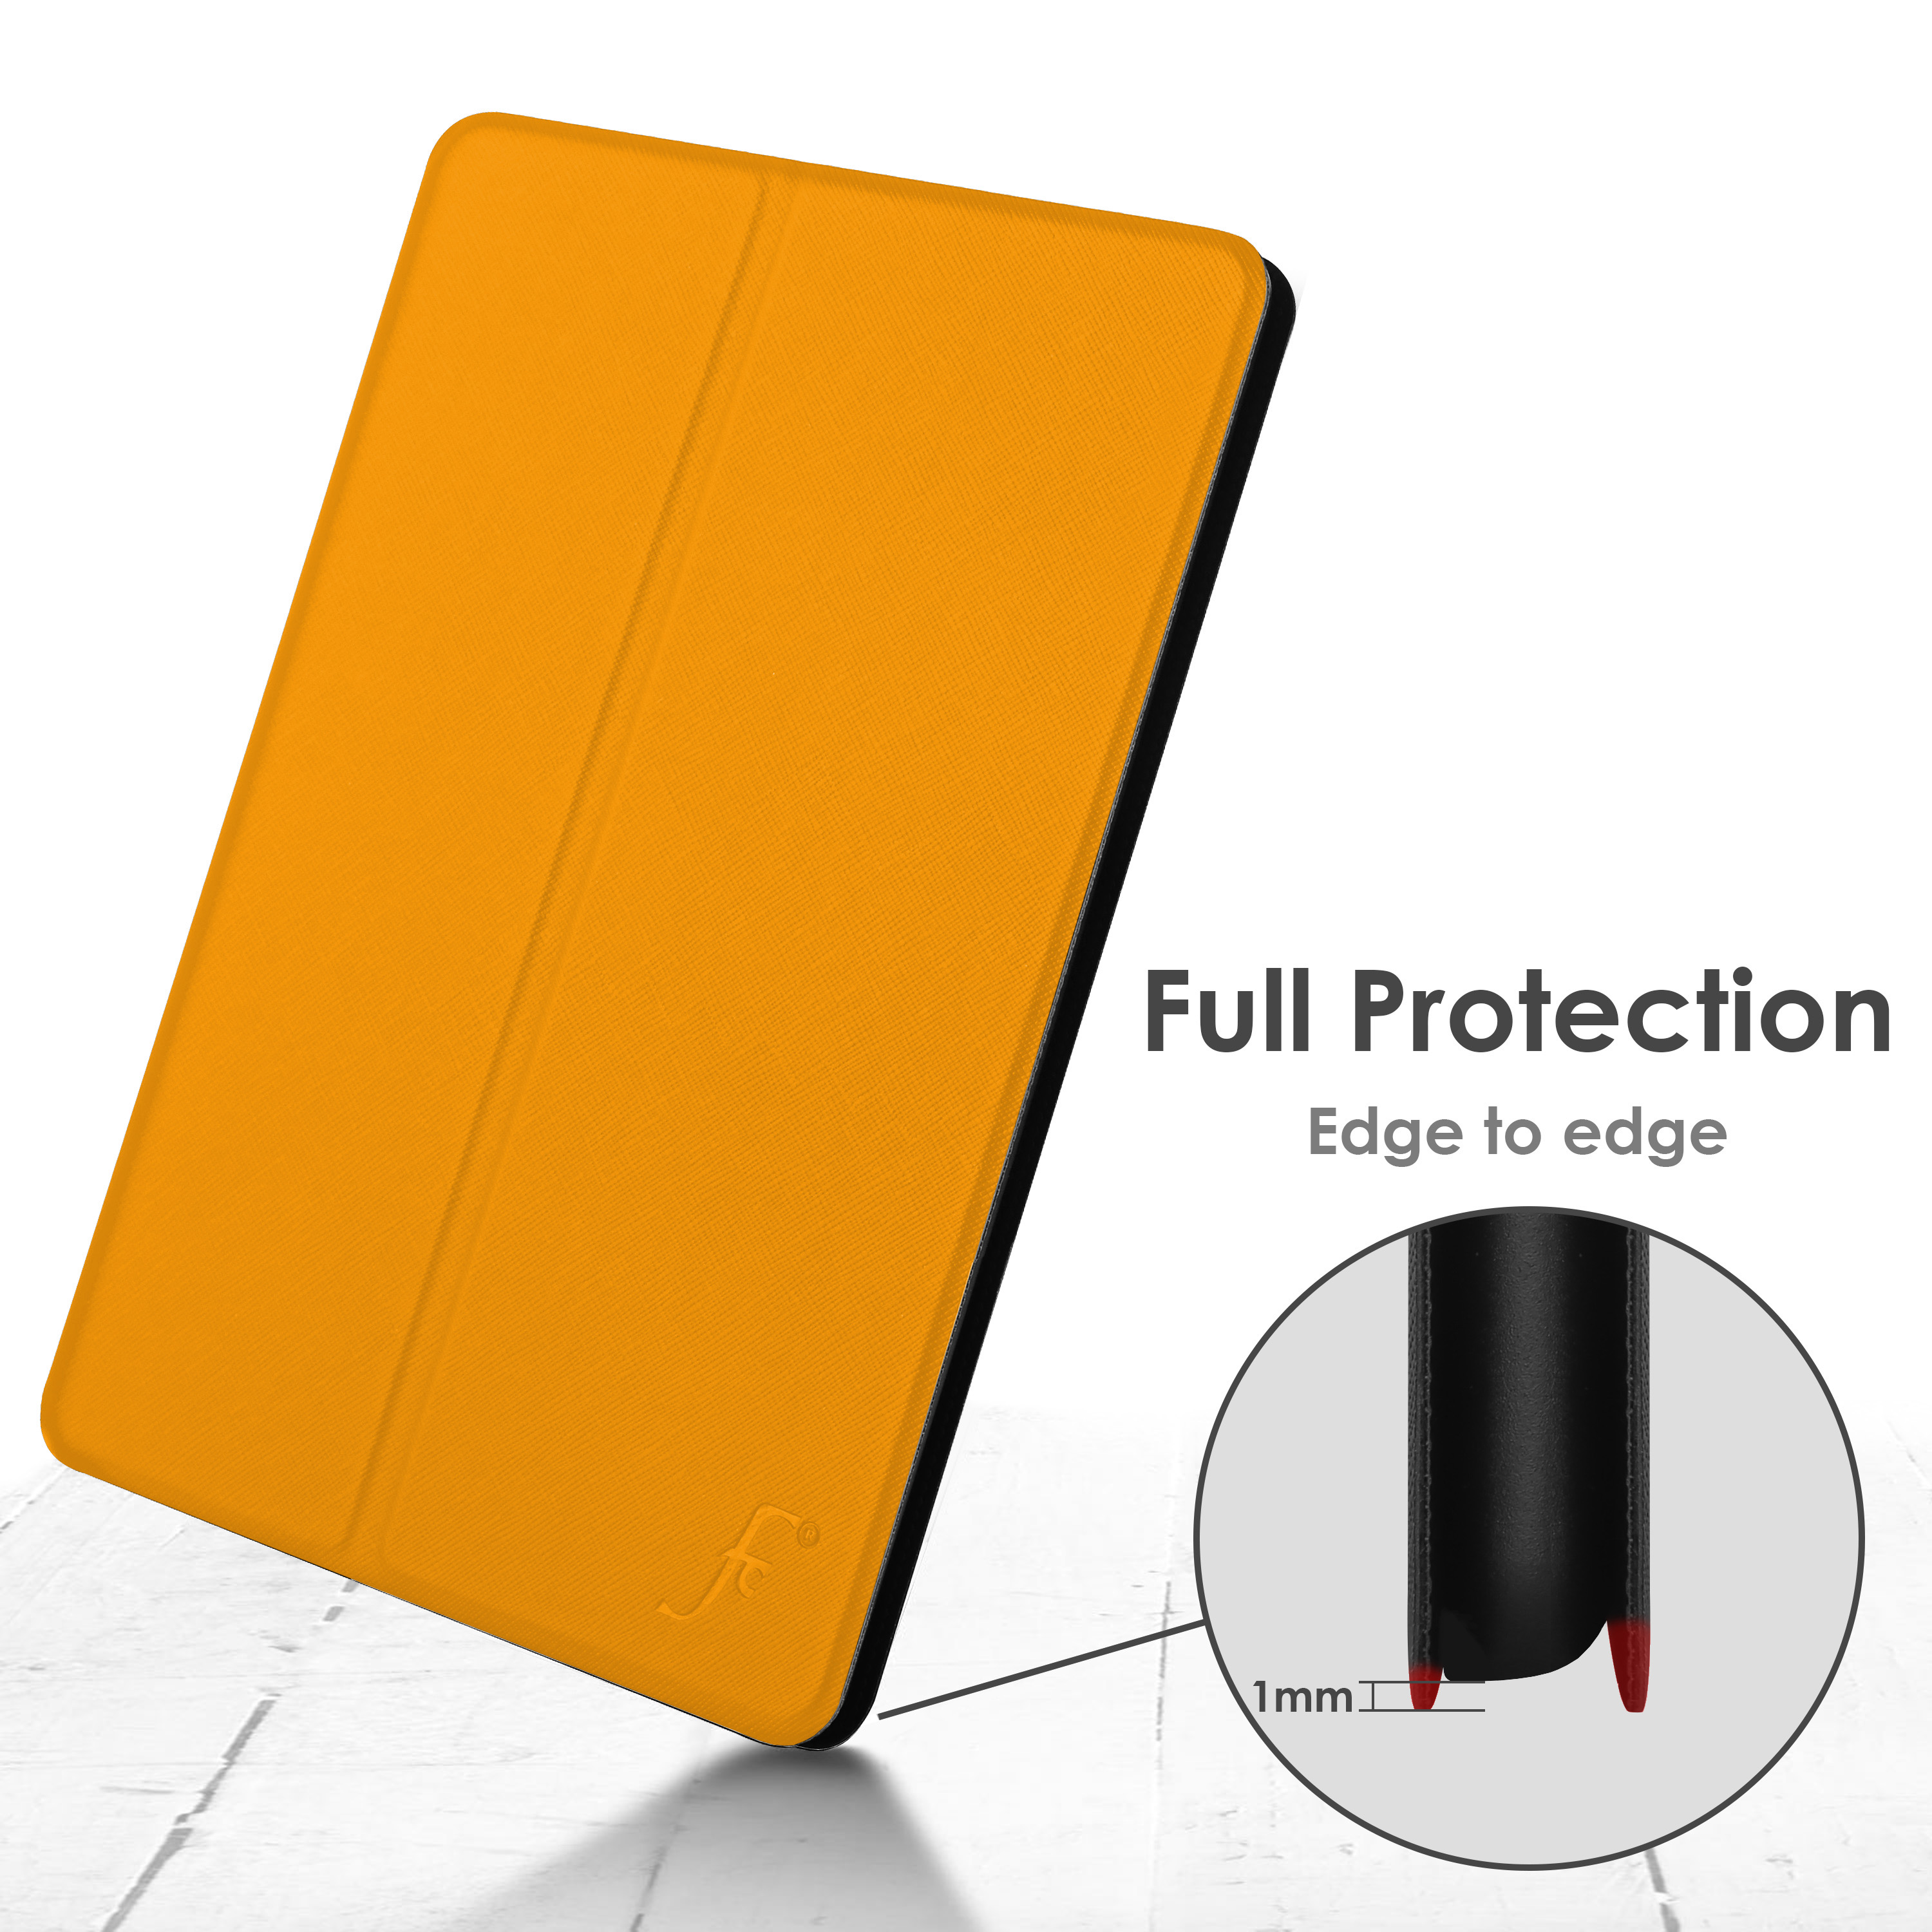 miniature 110 - Samsung Galaxy Tab A 10.1 2019 Étui Magnétique Protection & Support + Stylet